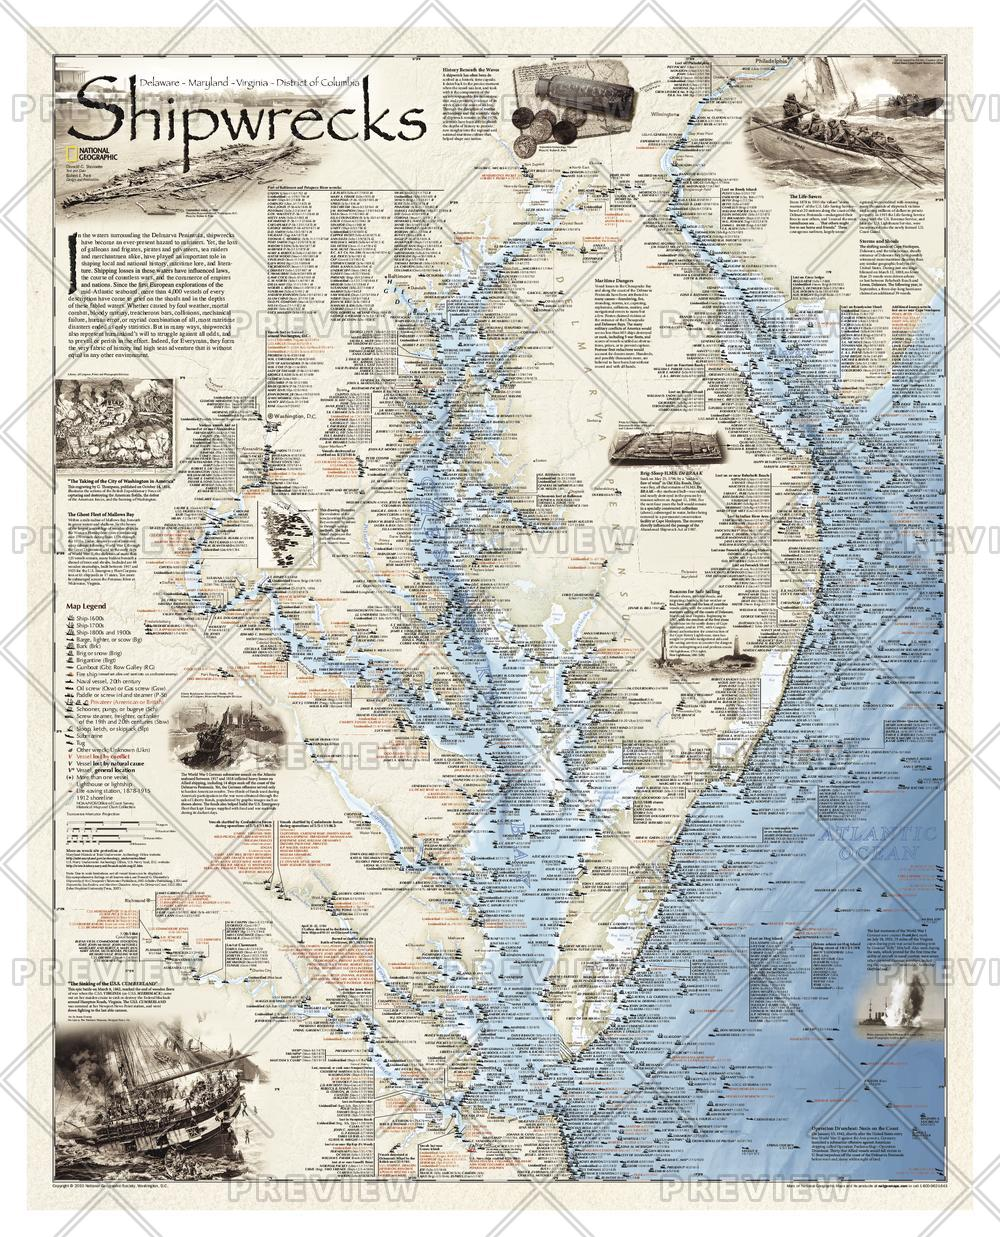 Shipwrecks of Delmarva